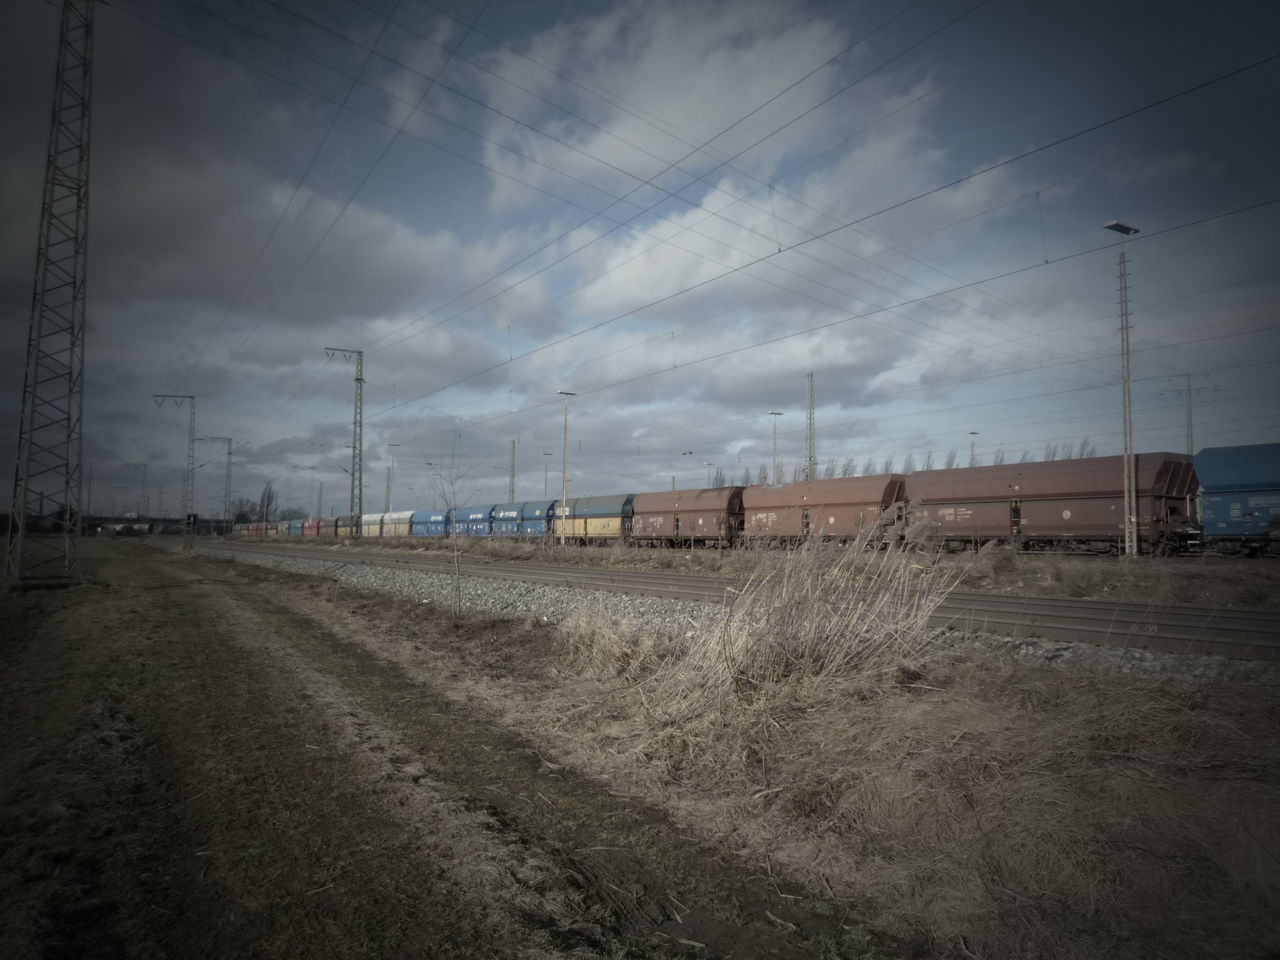 sky, transportation, rail transportation, cloud - sky, no people, train - vehicle, electricity pylon, railroad track, day, outdoors, nature